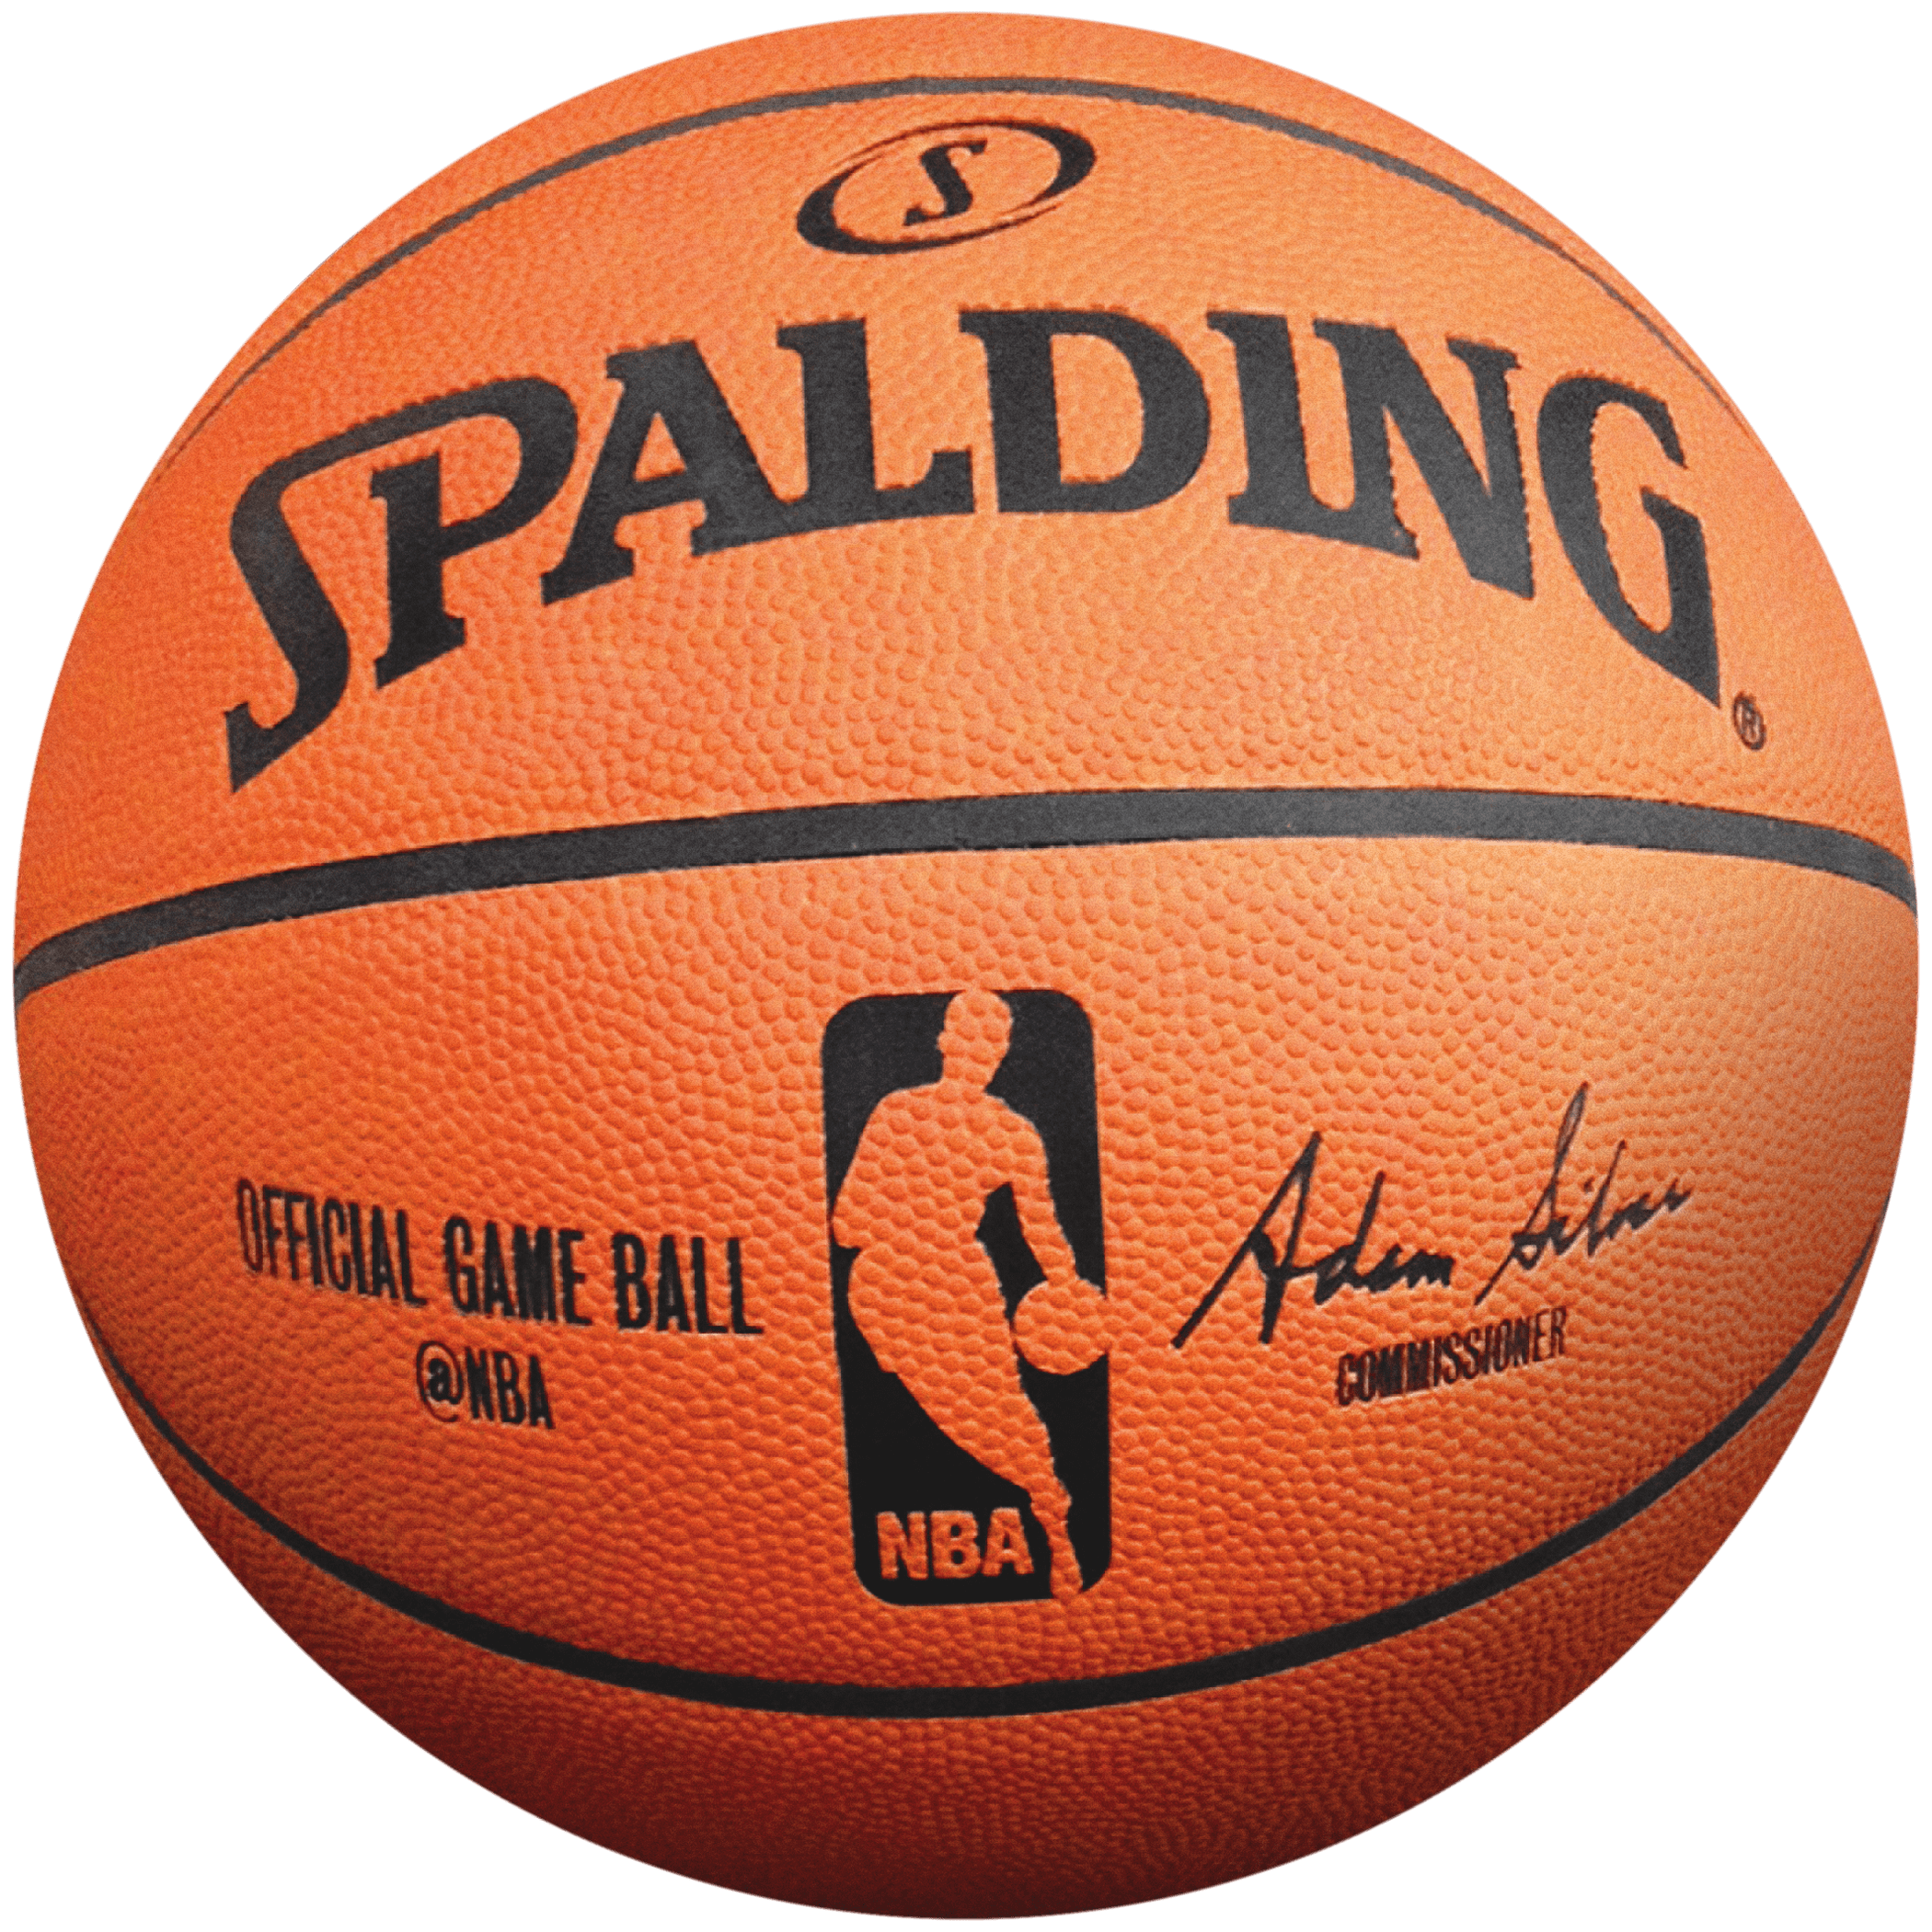 Basketball clipart transparent background jpg library download Spalding Basketball PNG - PHOTOS PNG jpg library download